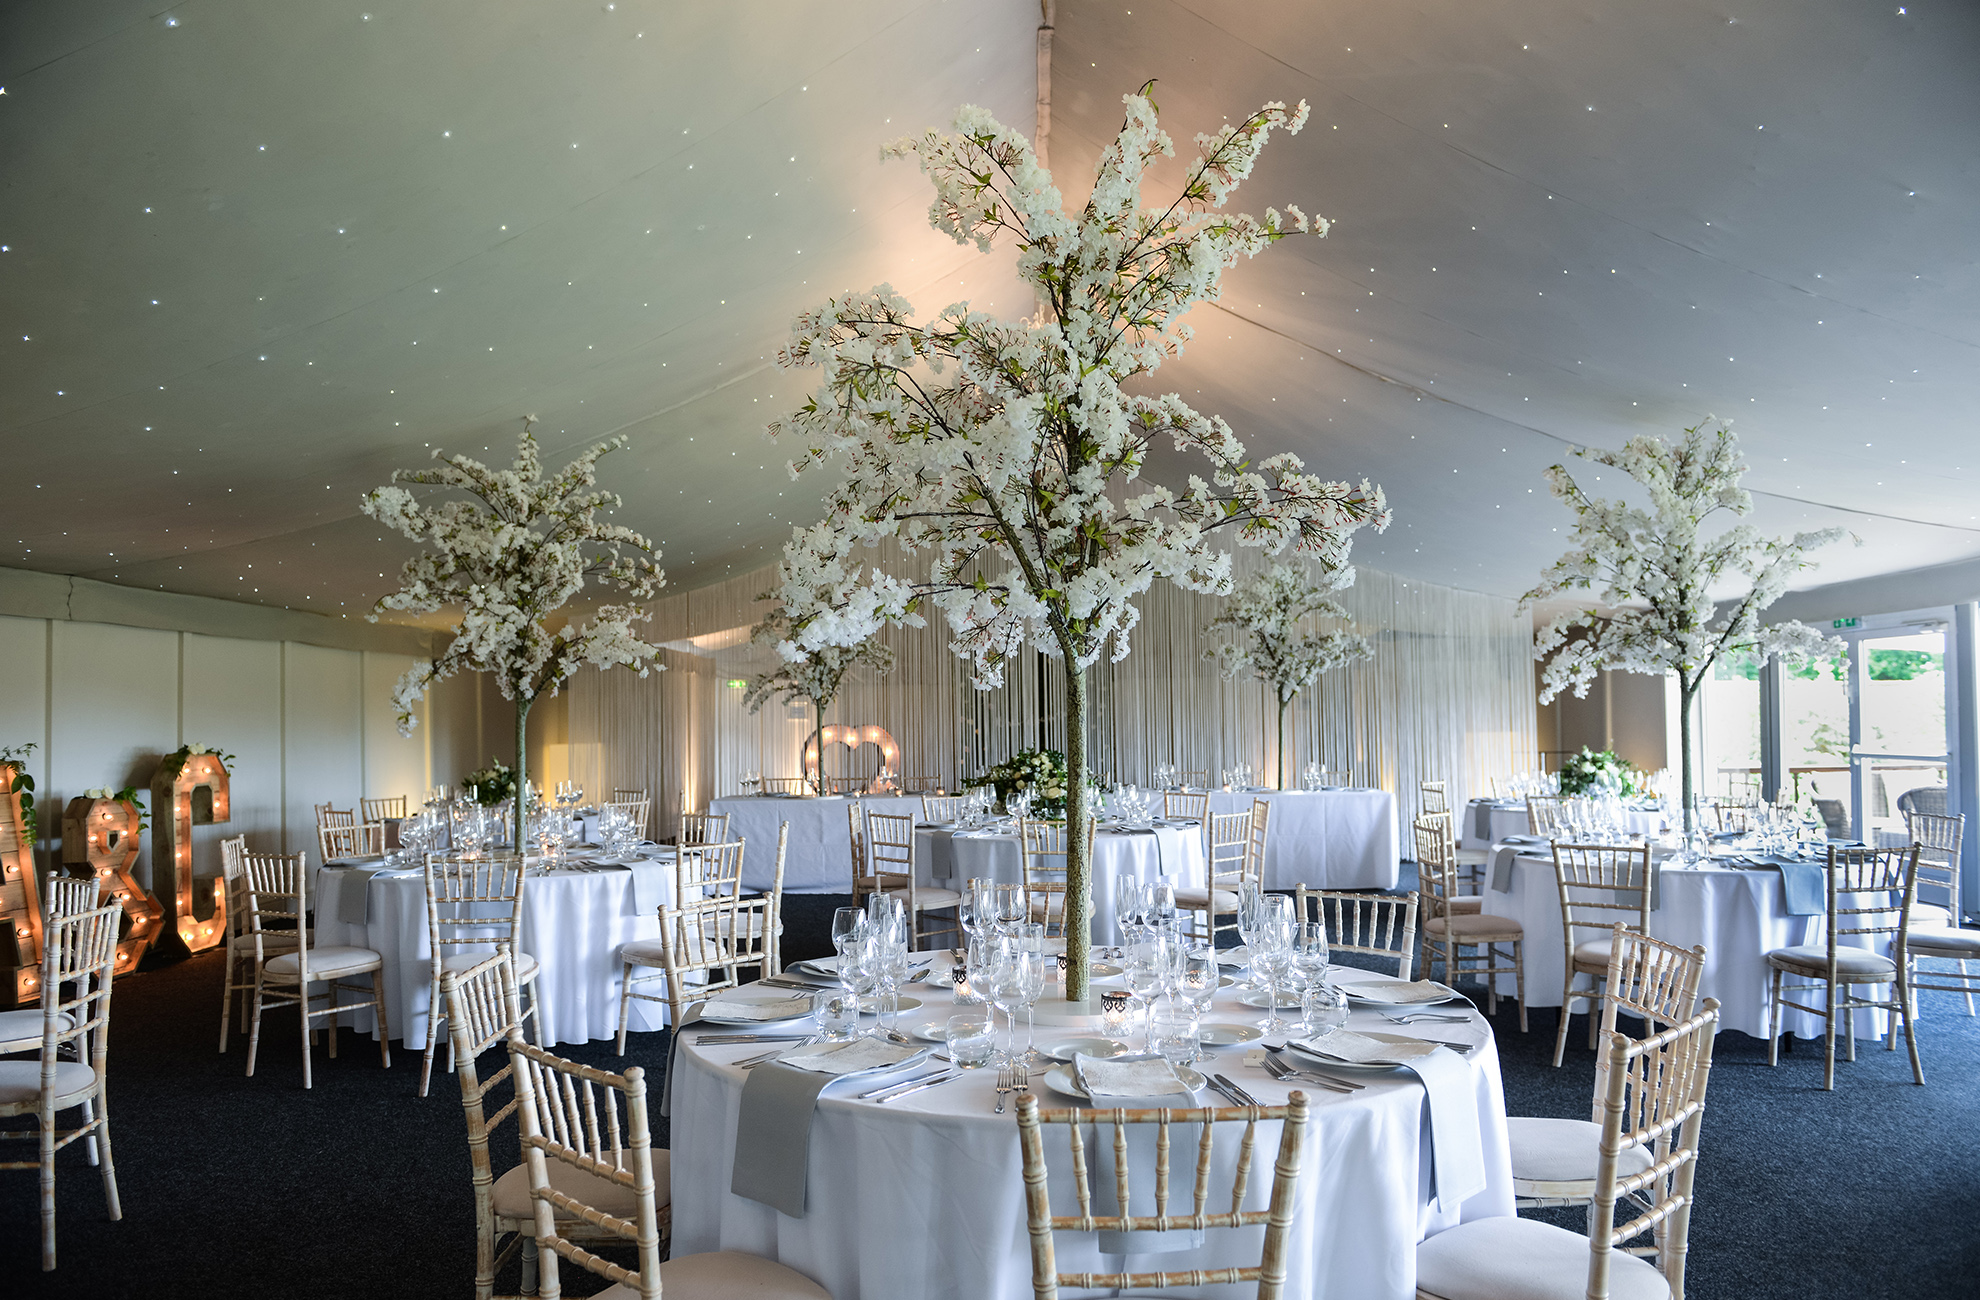 Use the Pavillion at Combermere Abbey for a fun wedding reception